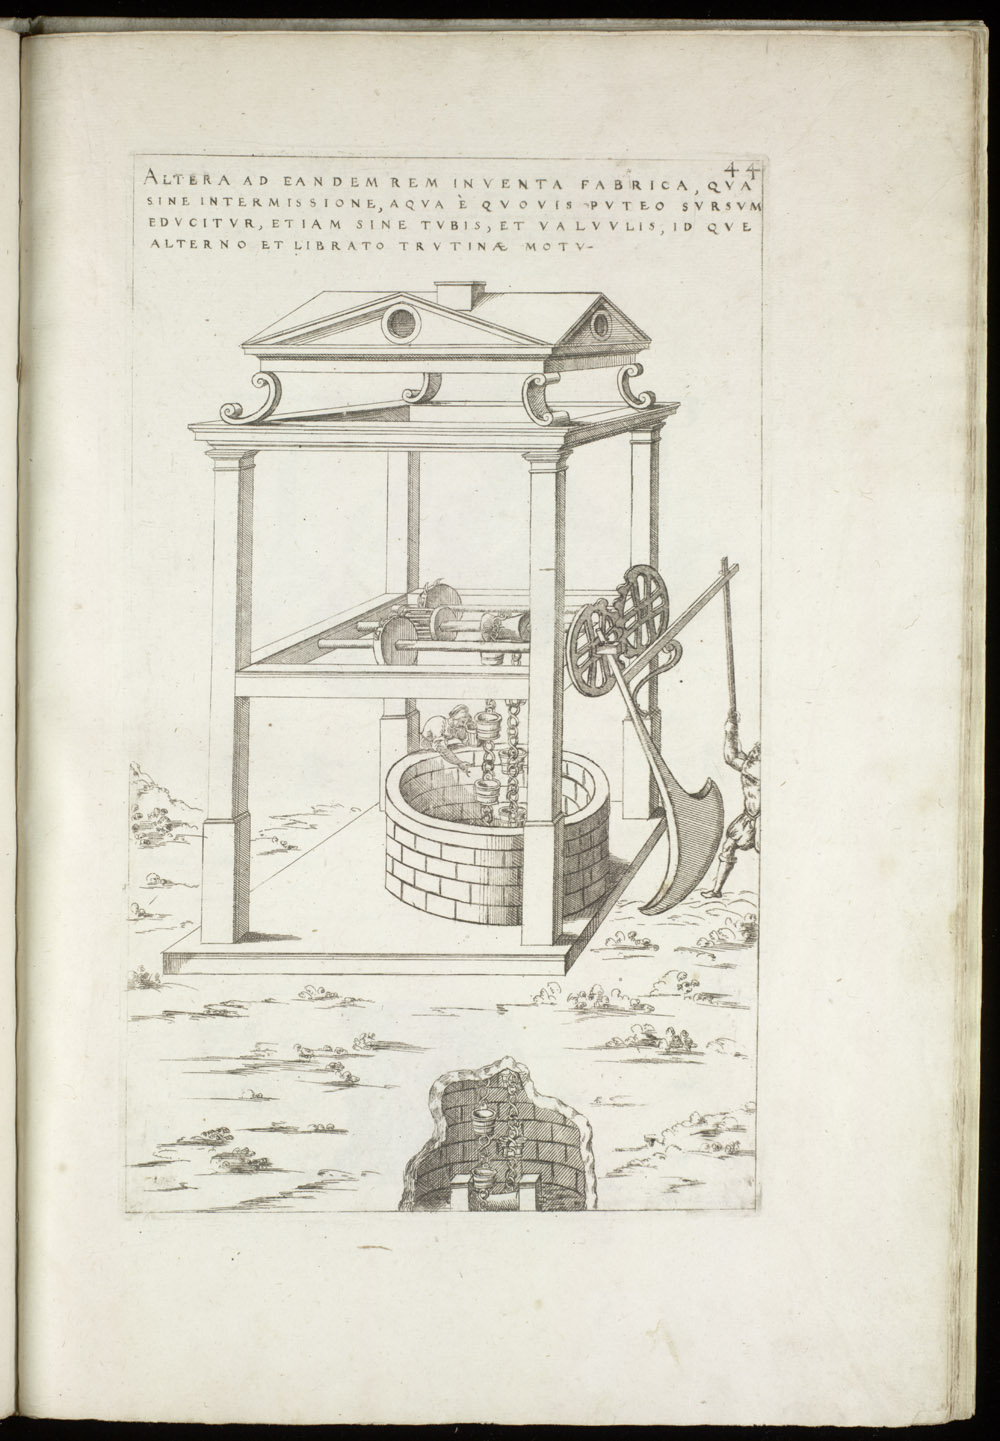 Plate 44 [Endless chain of well buckets],  Image number:SIL4-2-121a